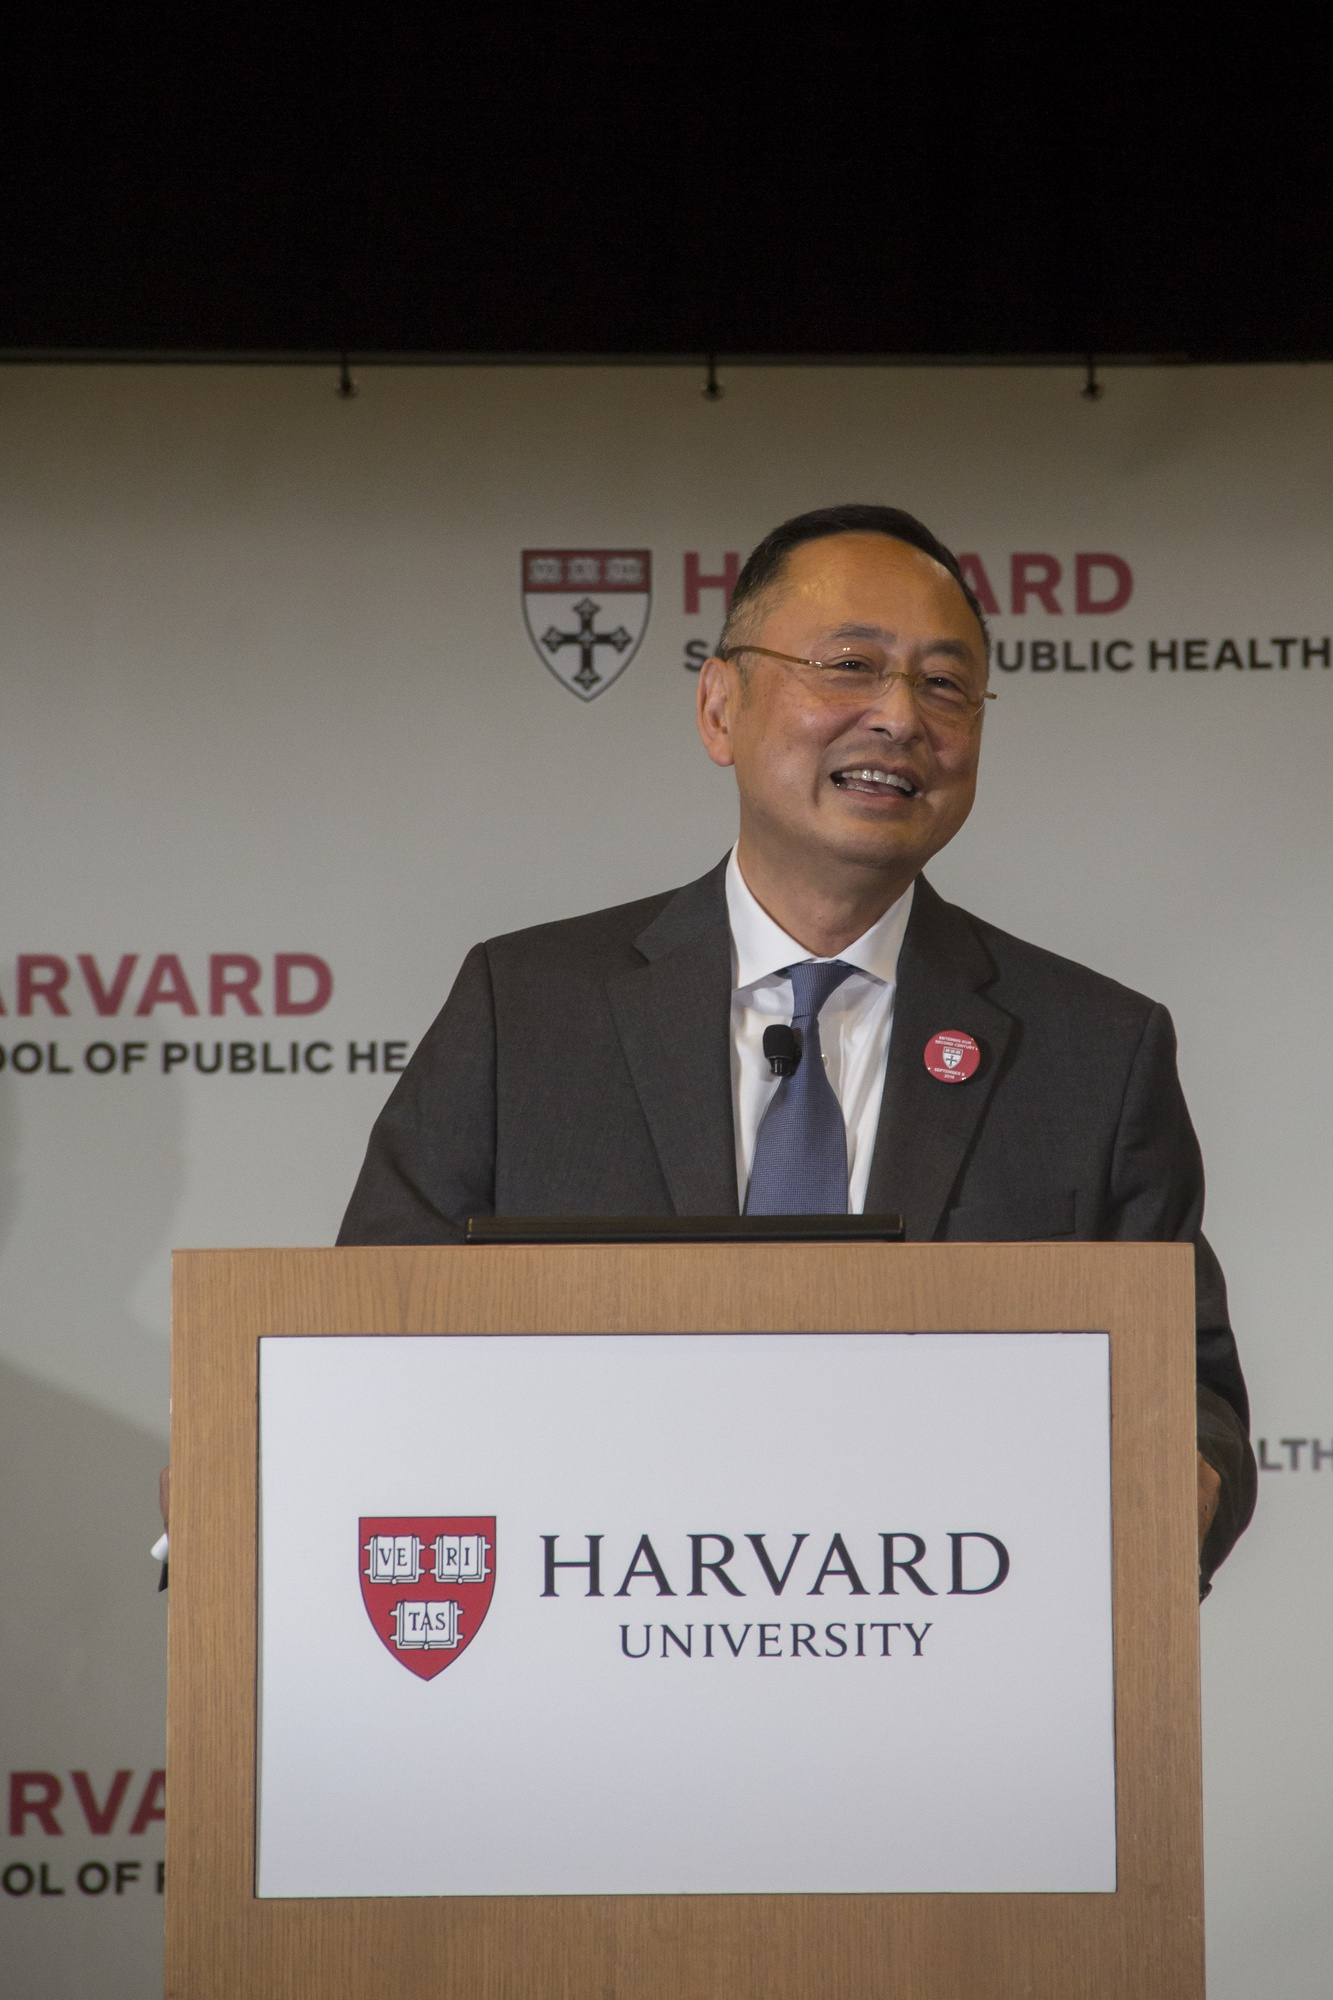 Gerald L. Chan speaks at the Harvard School of Public Health in September 2014 during a public announcement of his donation to the school. Chan has purchased the former Harvard Square Theater, adding to the more than $100 million real estate portfolio he now owns in the Square.